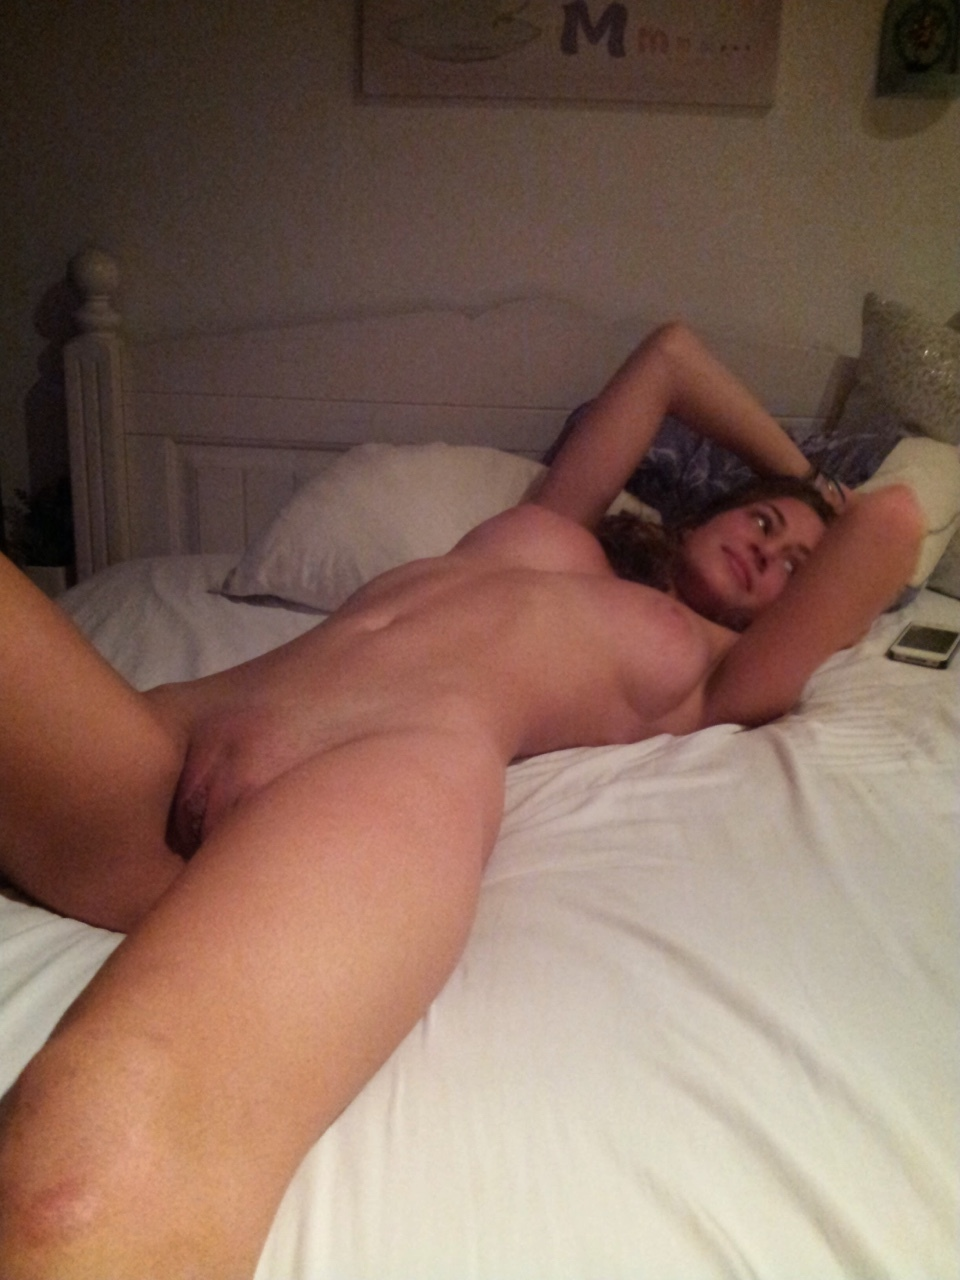 Gina darling leaked nudes